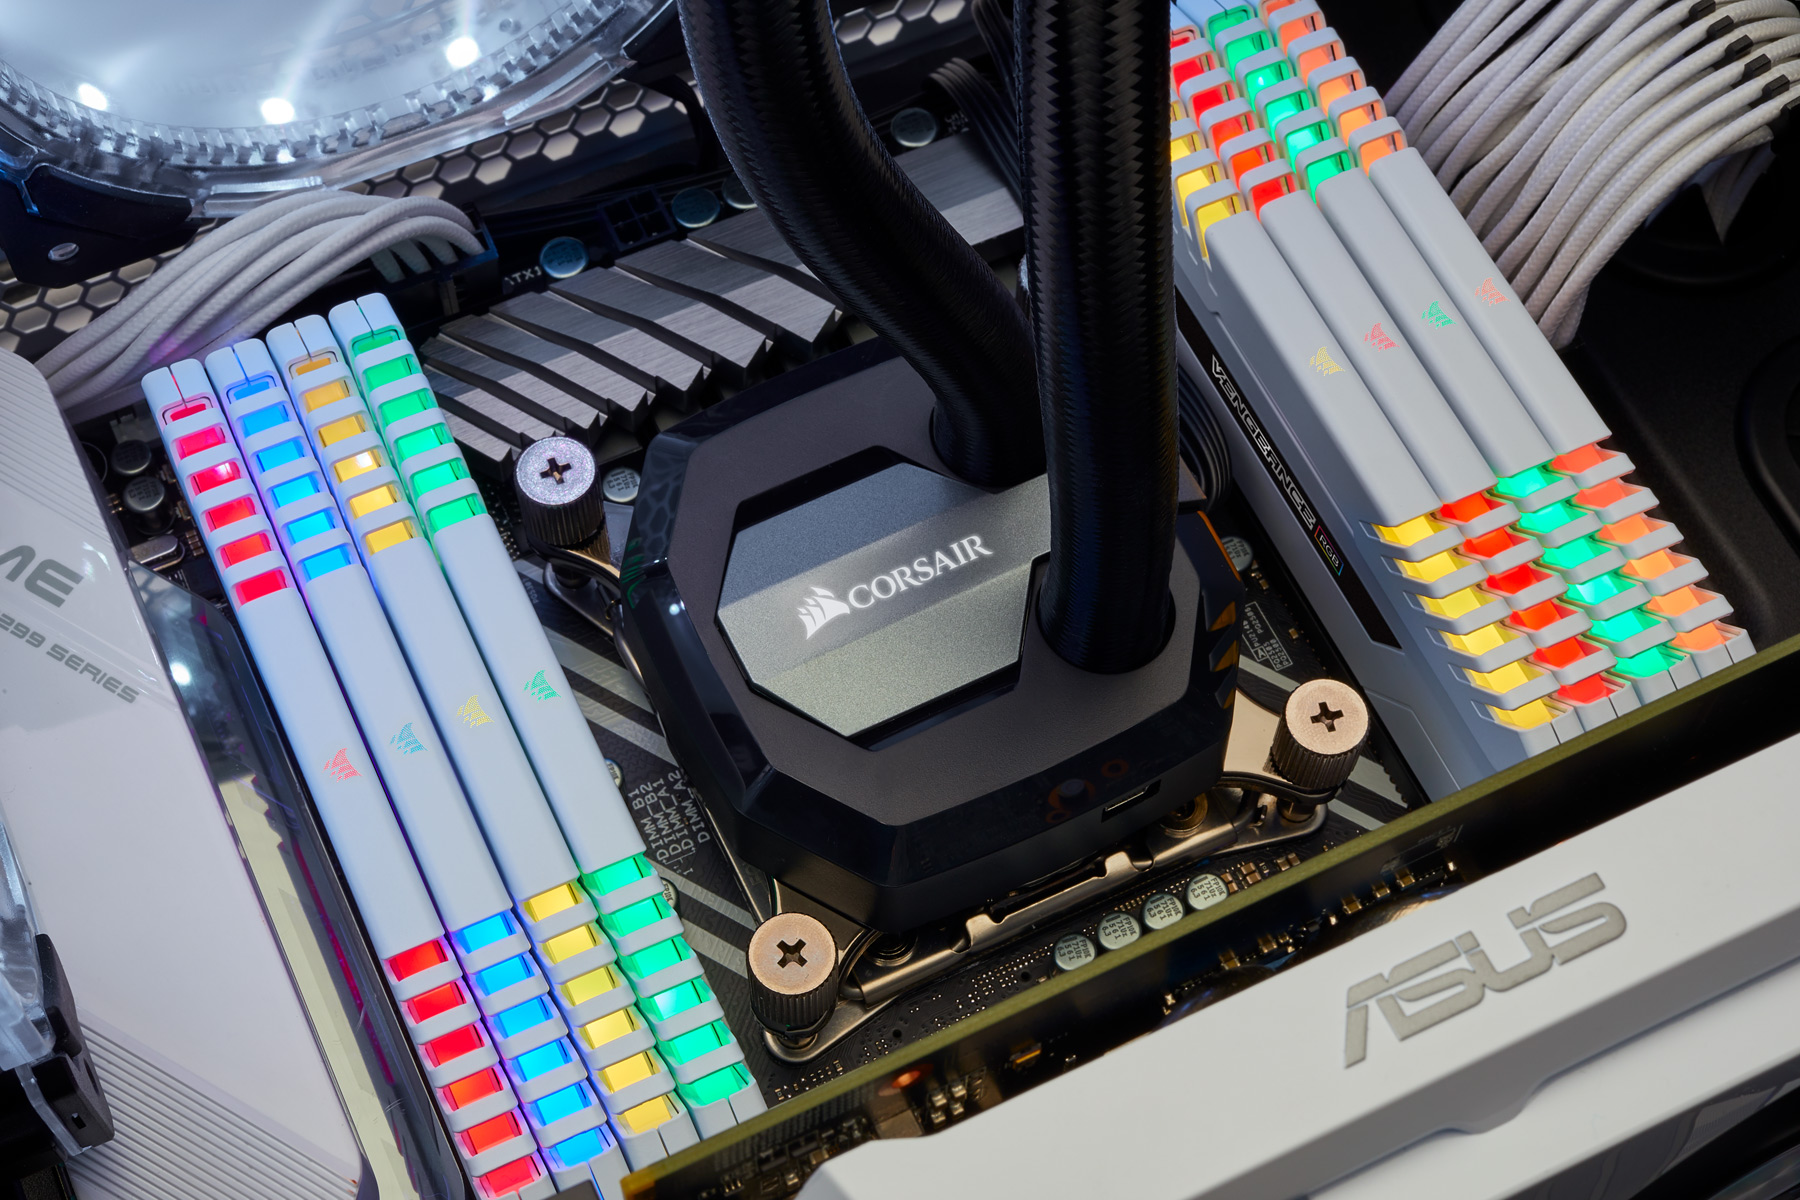 Corsair Rgb Corsair Weds Rgb Lighting And White Heat Spreaders In